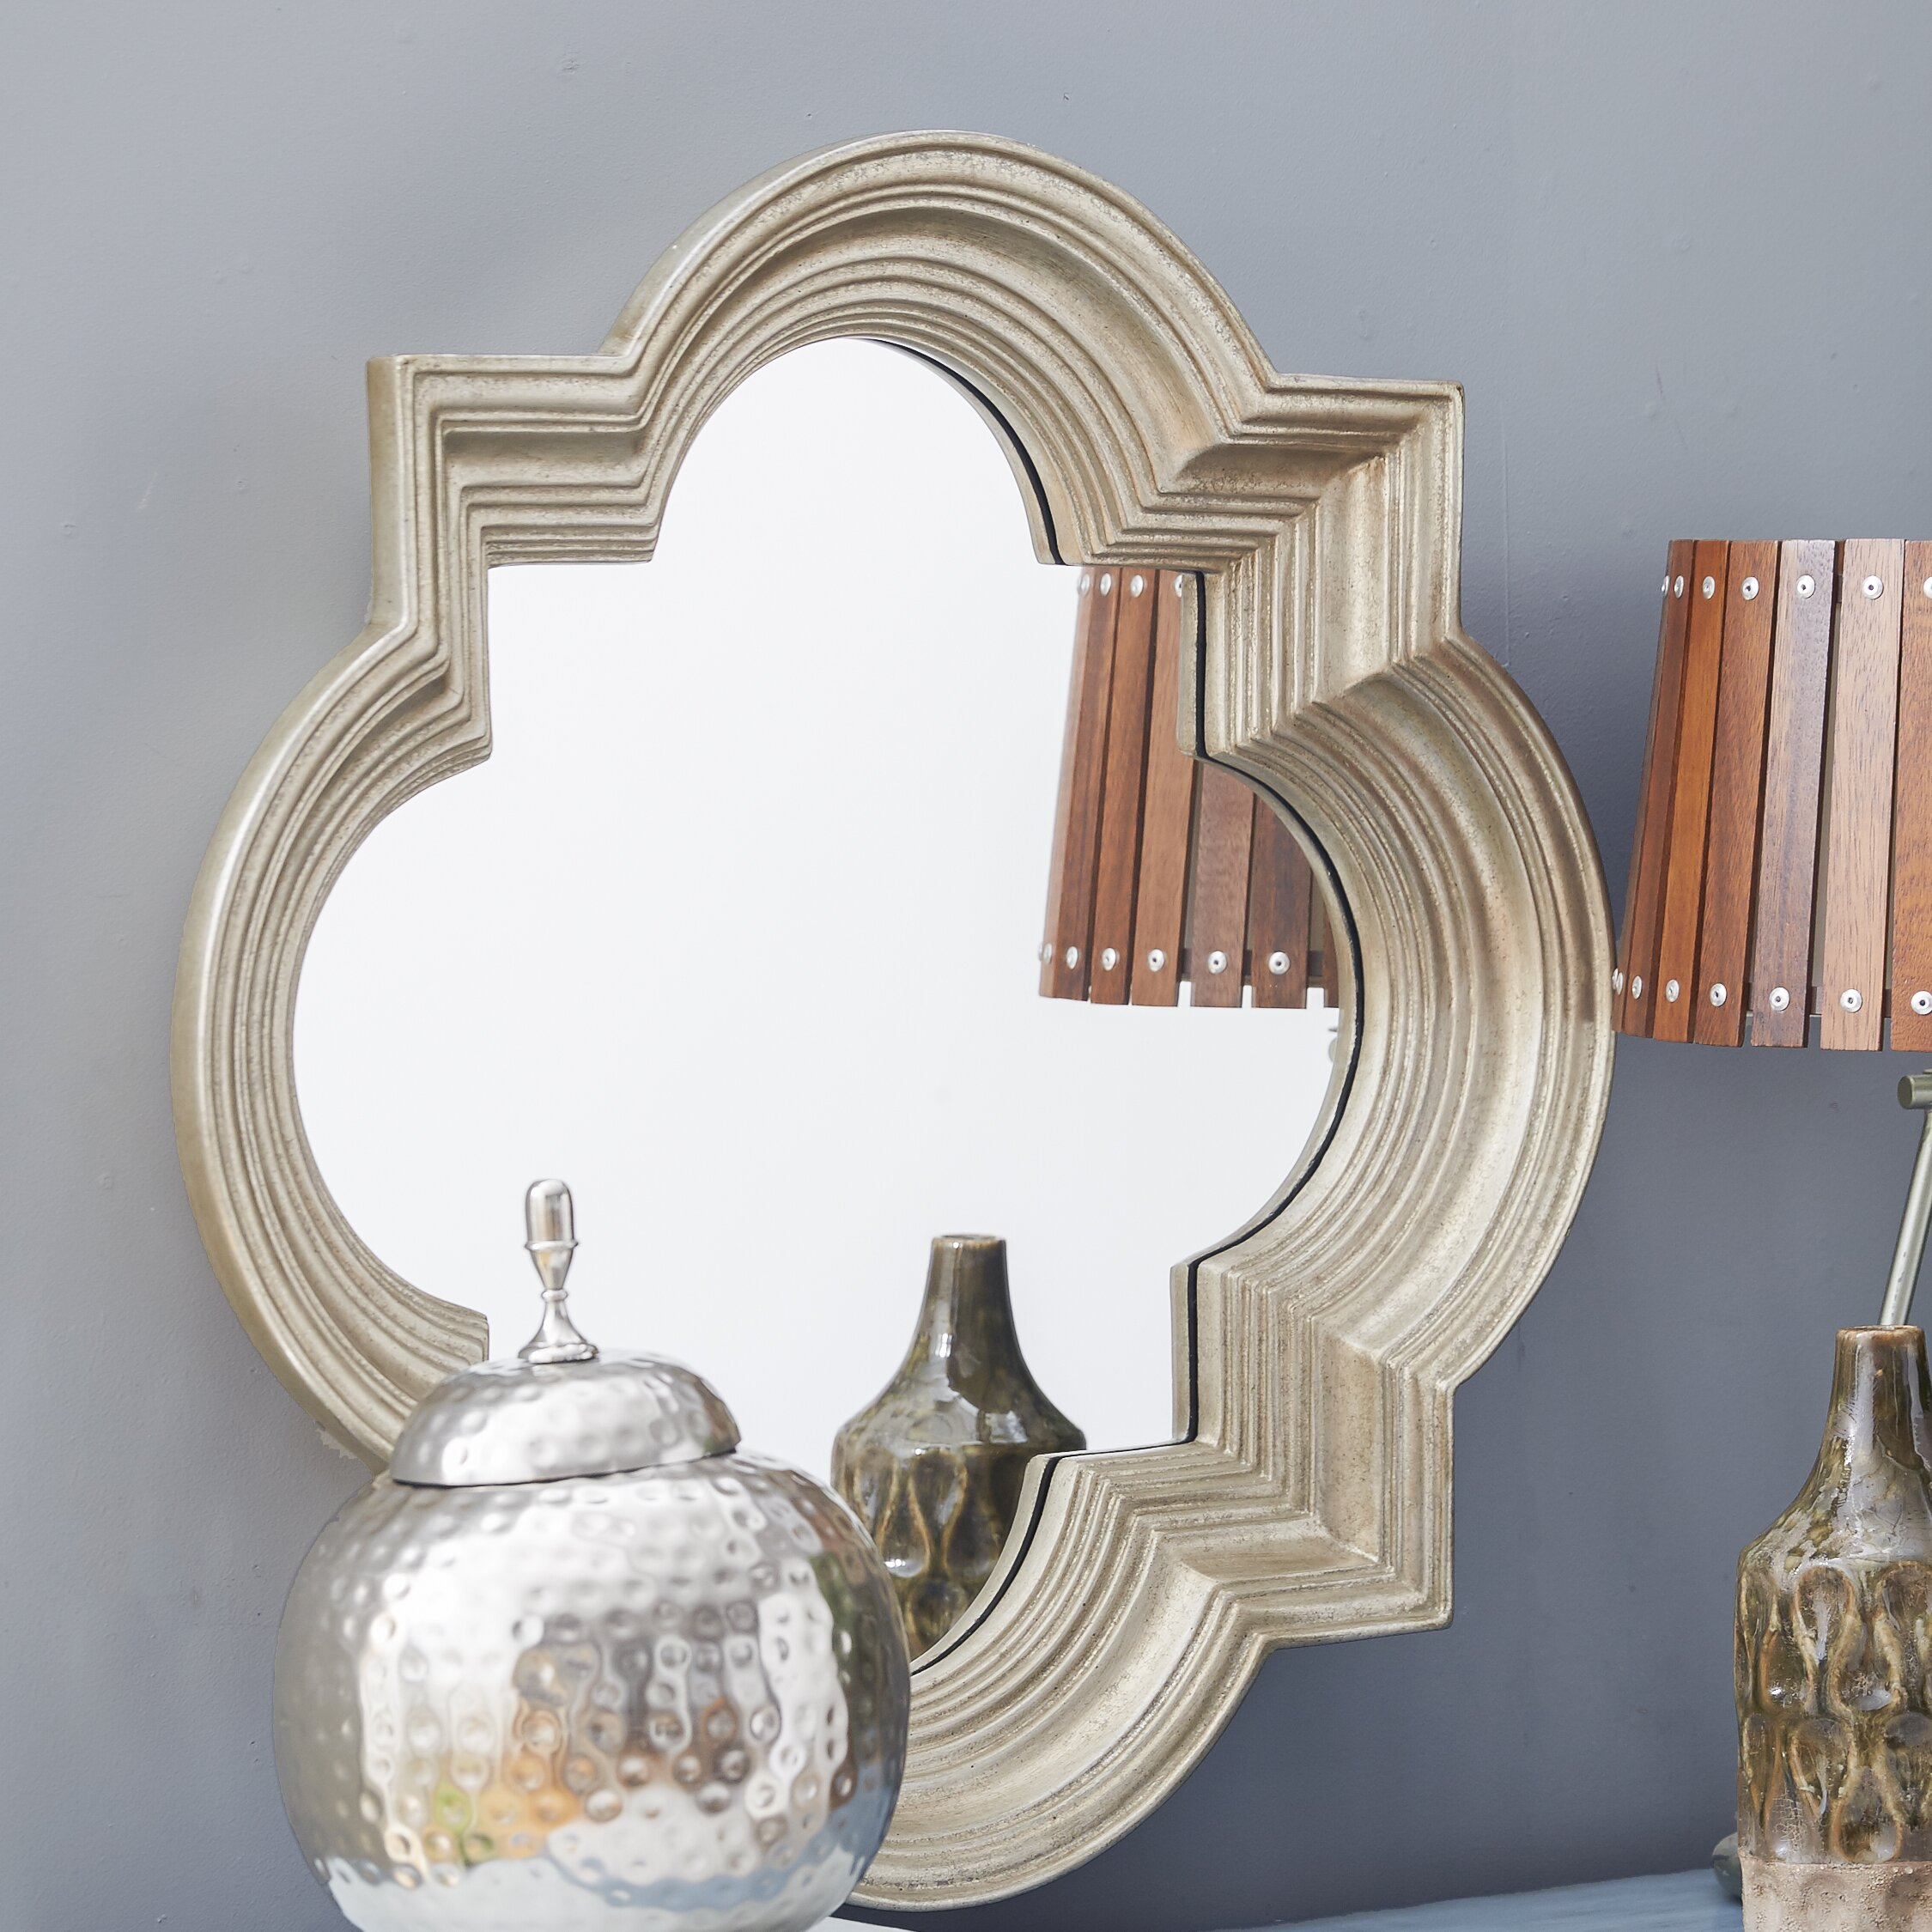 Osp designs gatsby decorative beveled wall mirror for Wall mirror design